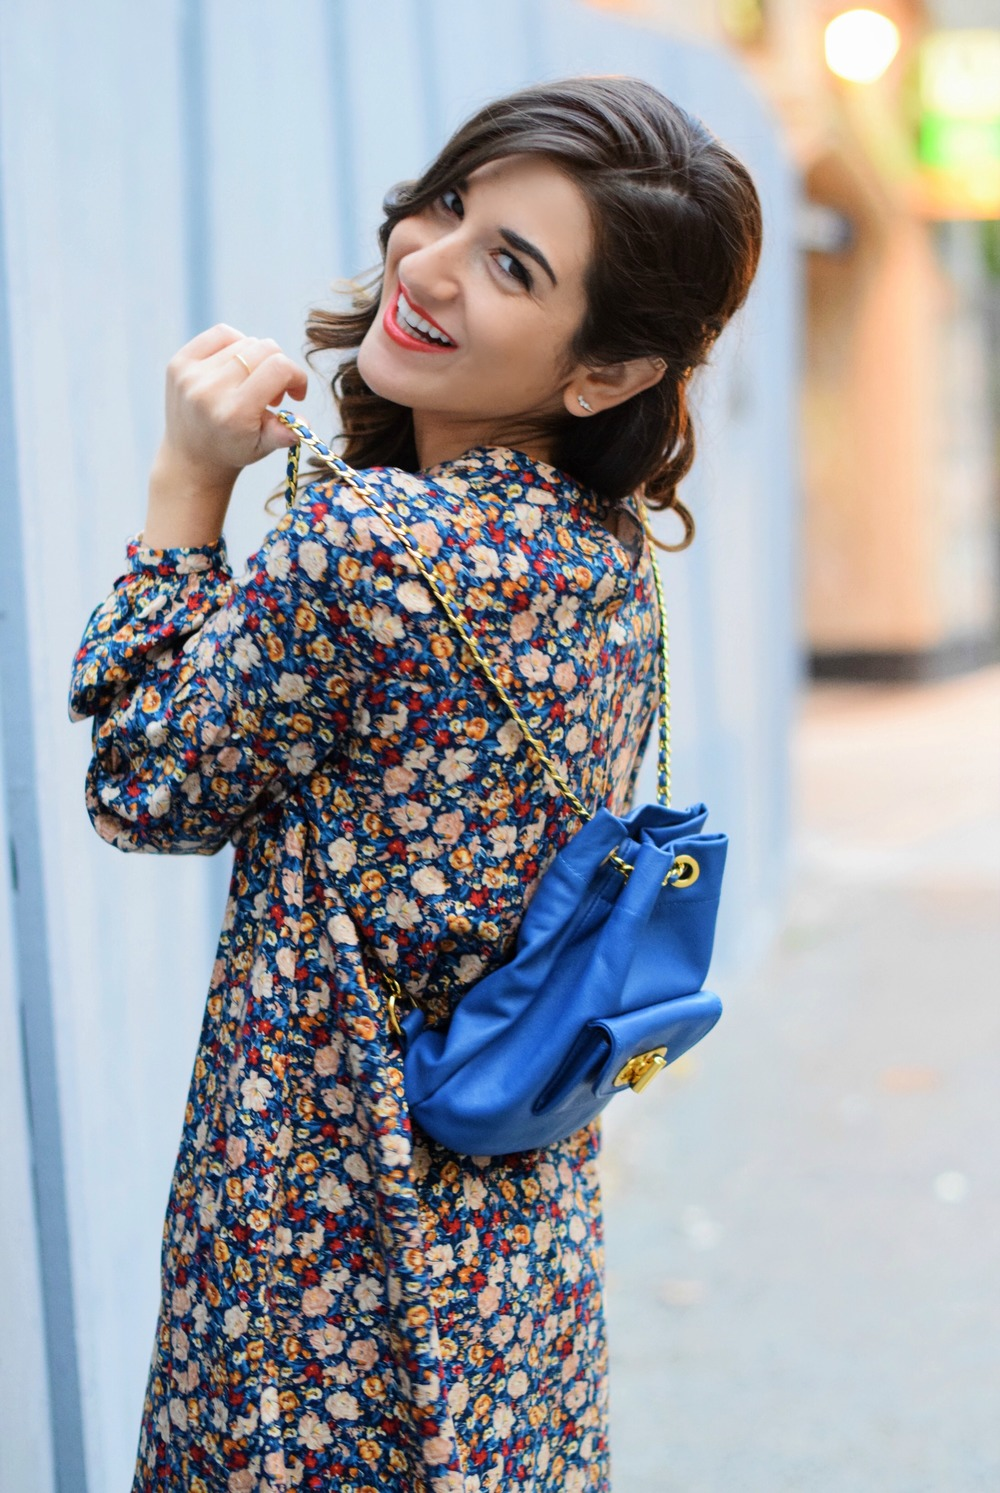 Floral Dress Blue Leather Backpack Louboutins & Love Fashion Blog Esther Santer NYC Street Style Blogger Black Tights Fringe Preta Ivanka Trump Booties Hair Girl Women Shopping Inspo Inspiration Model Photoshoot New York City Trendy Winter OOTD Outfit.jpg